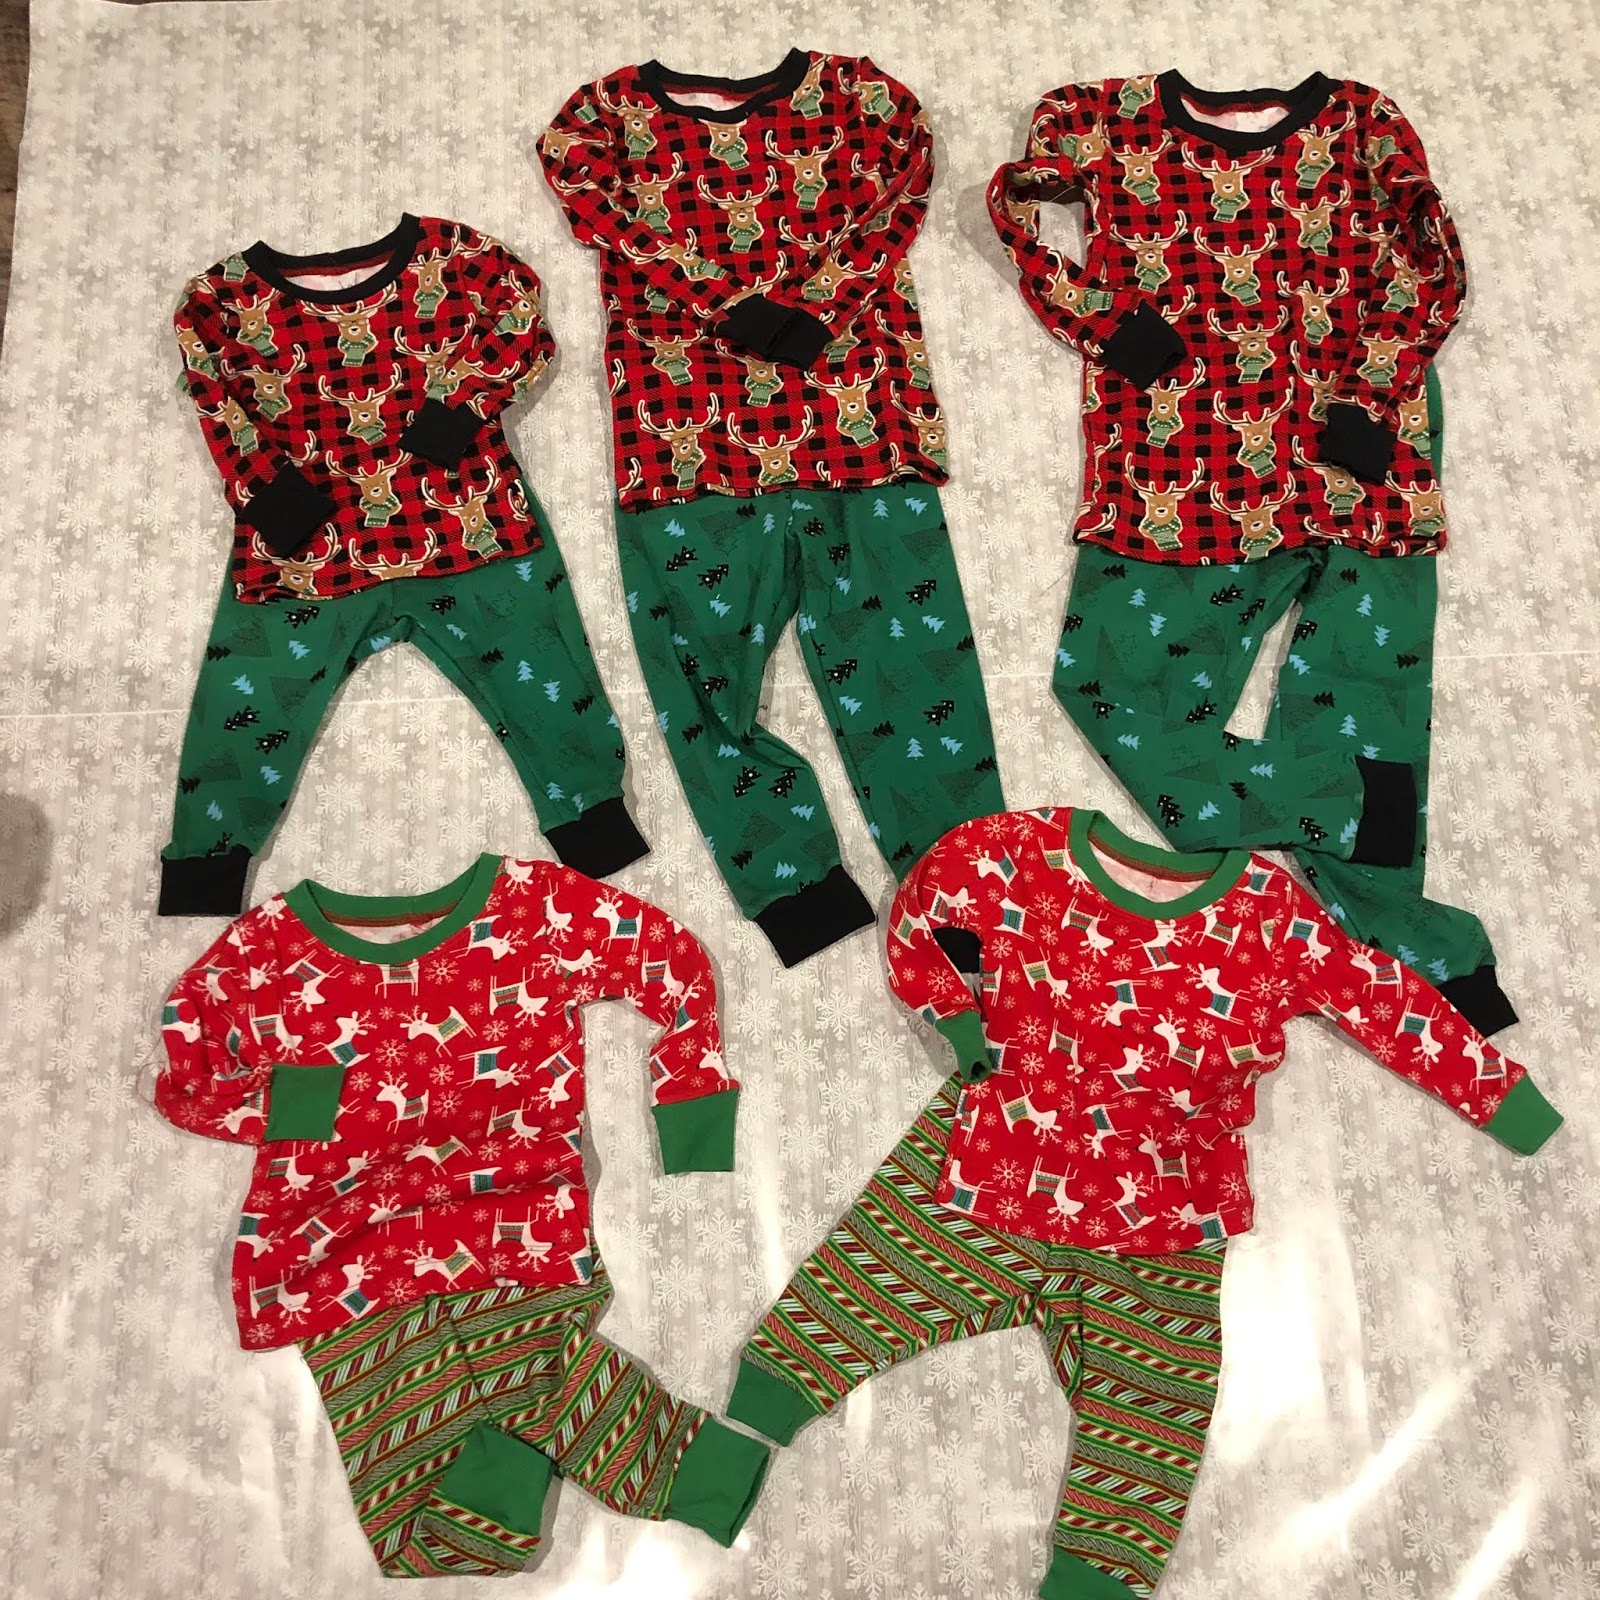 495c2ff2db4e ... Power Nap pajamas on Etsy. I love this pattern, it is birth to 10 years  old. The fabric is from Joann's. The top row is the boy pajamas and the  bottom ...